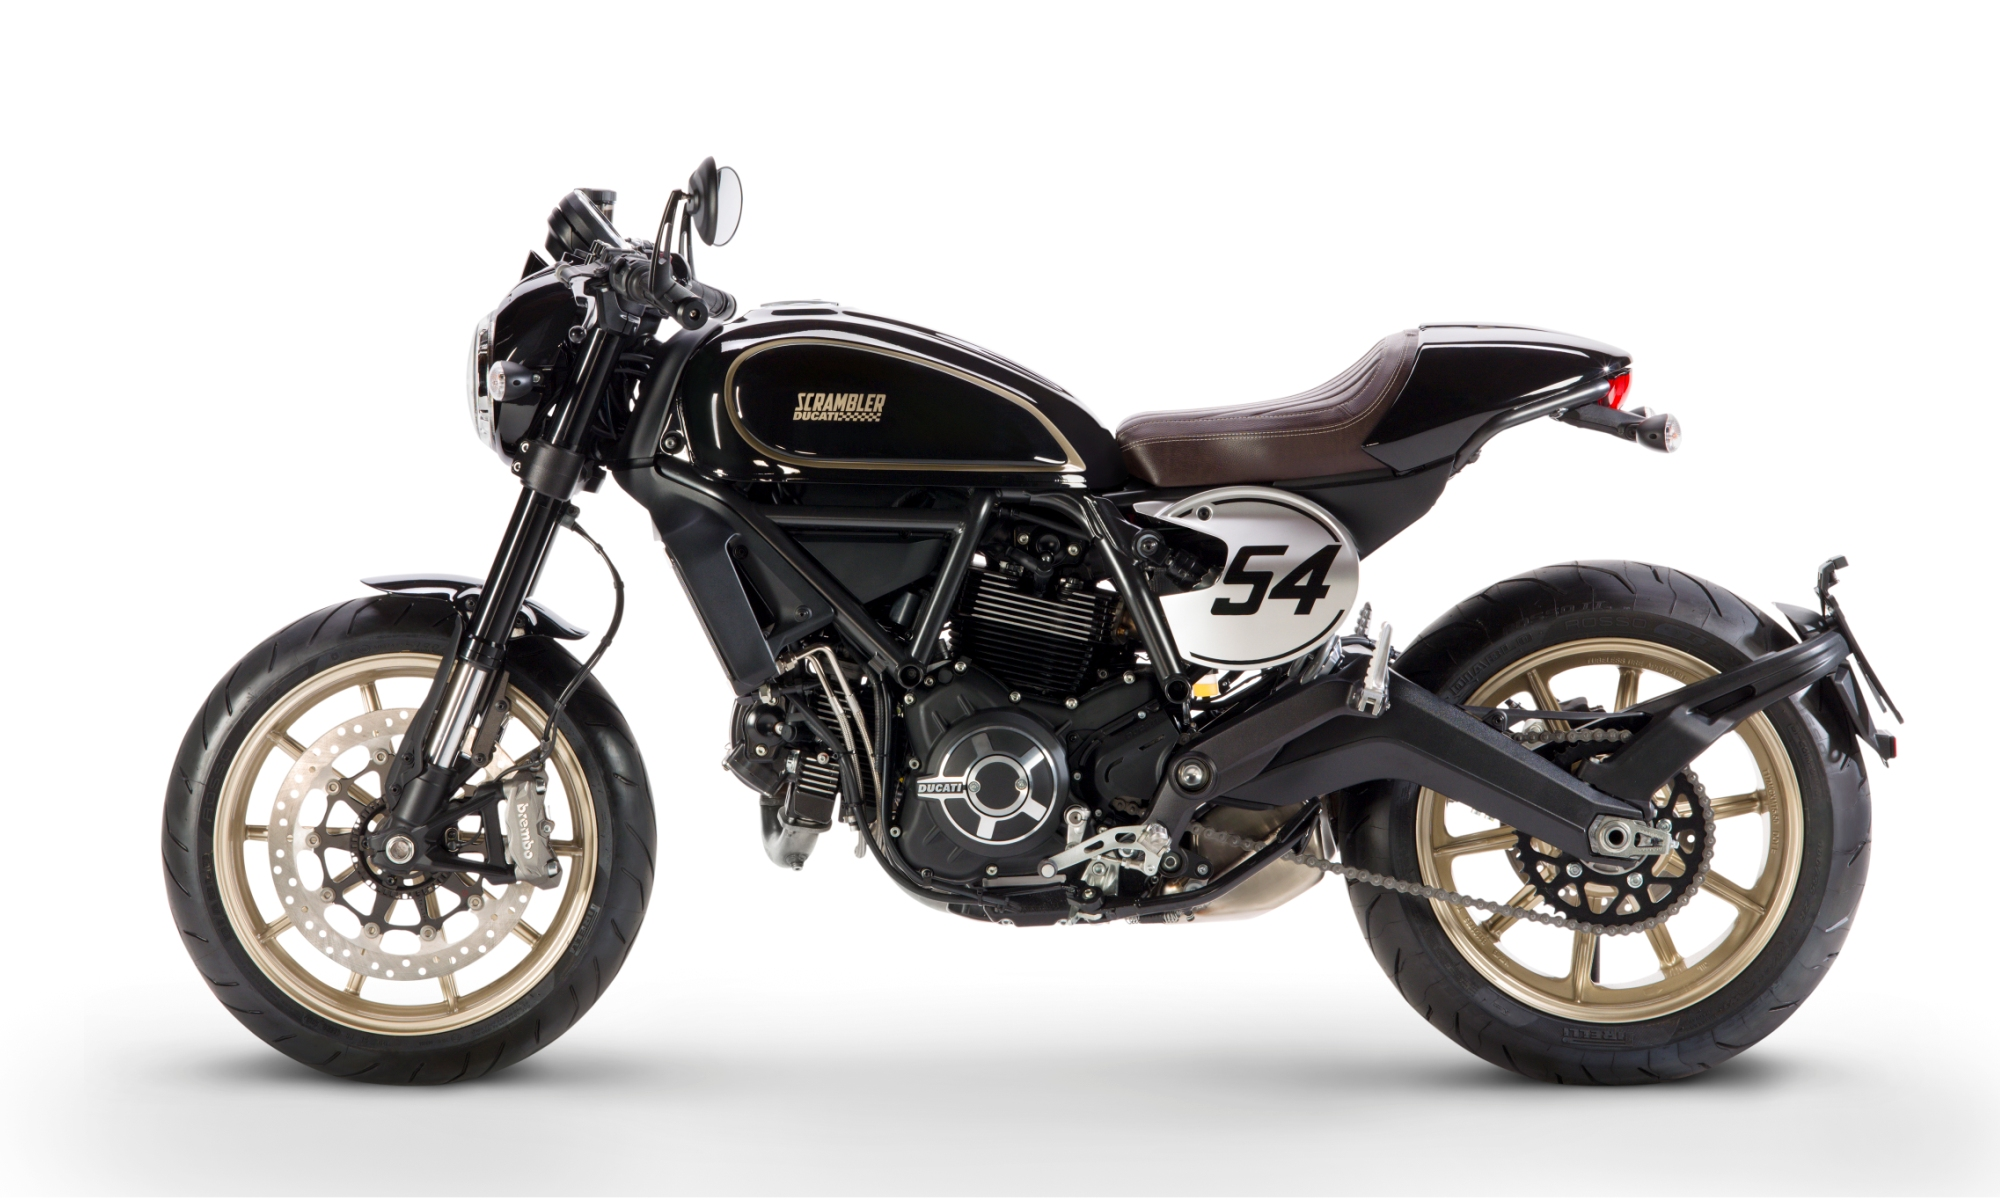 New From Ducati For 2017 Scramblers Monsters And A Superleggera Revzilla